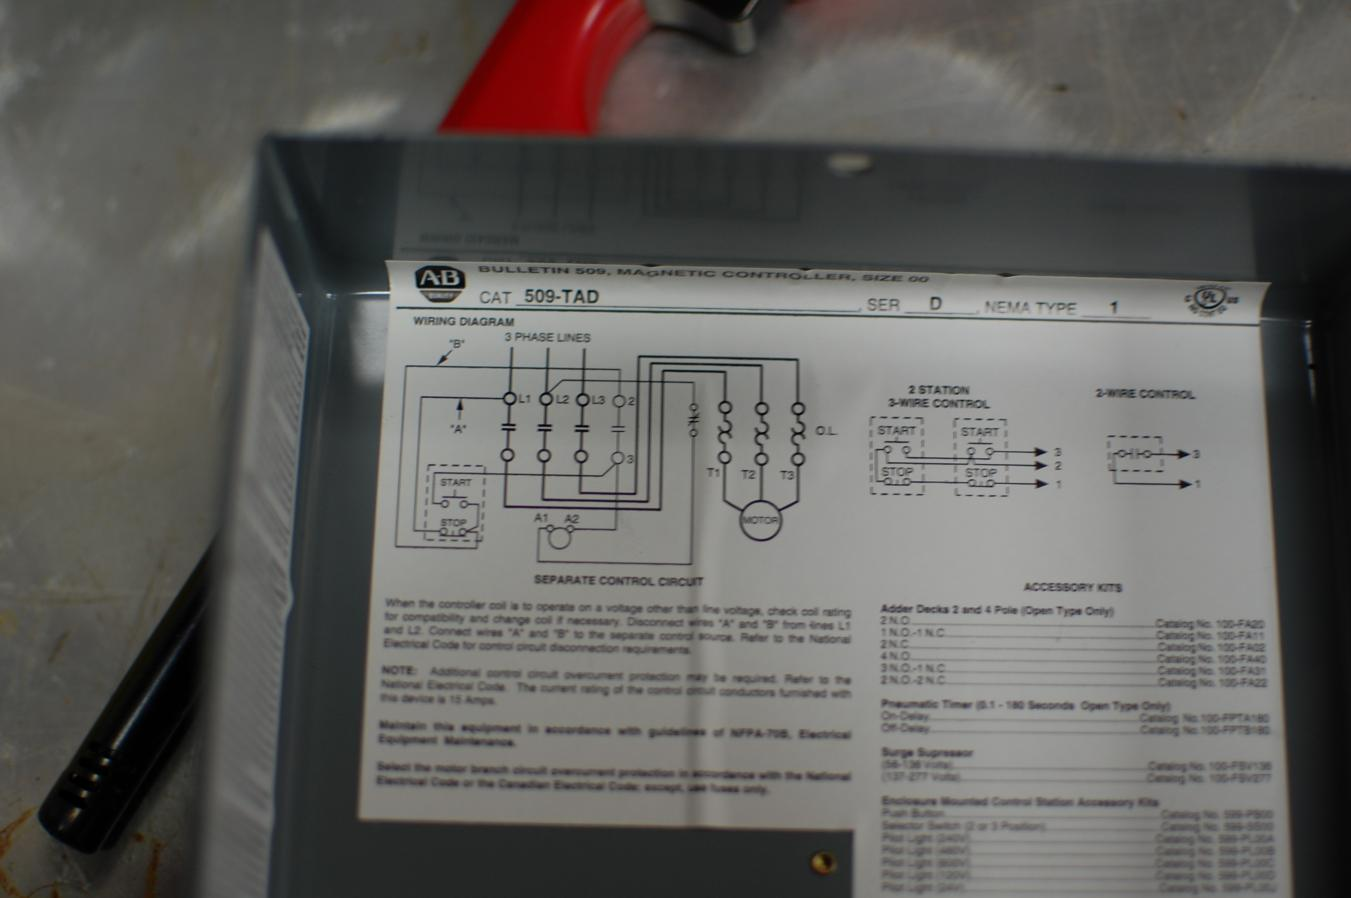 Powerflex 4 Wiring Diagram Electrical Schematics 3 Phase Wire 753 Caroldoey 698 X 692 Gif 18kb Flex Diagrams